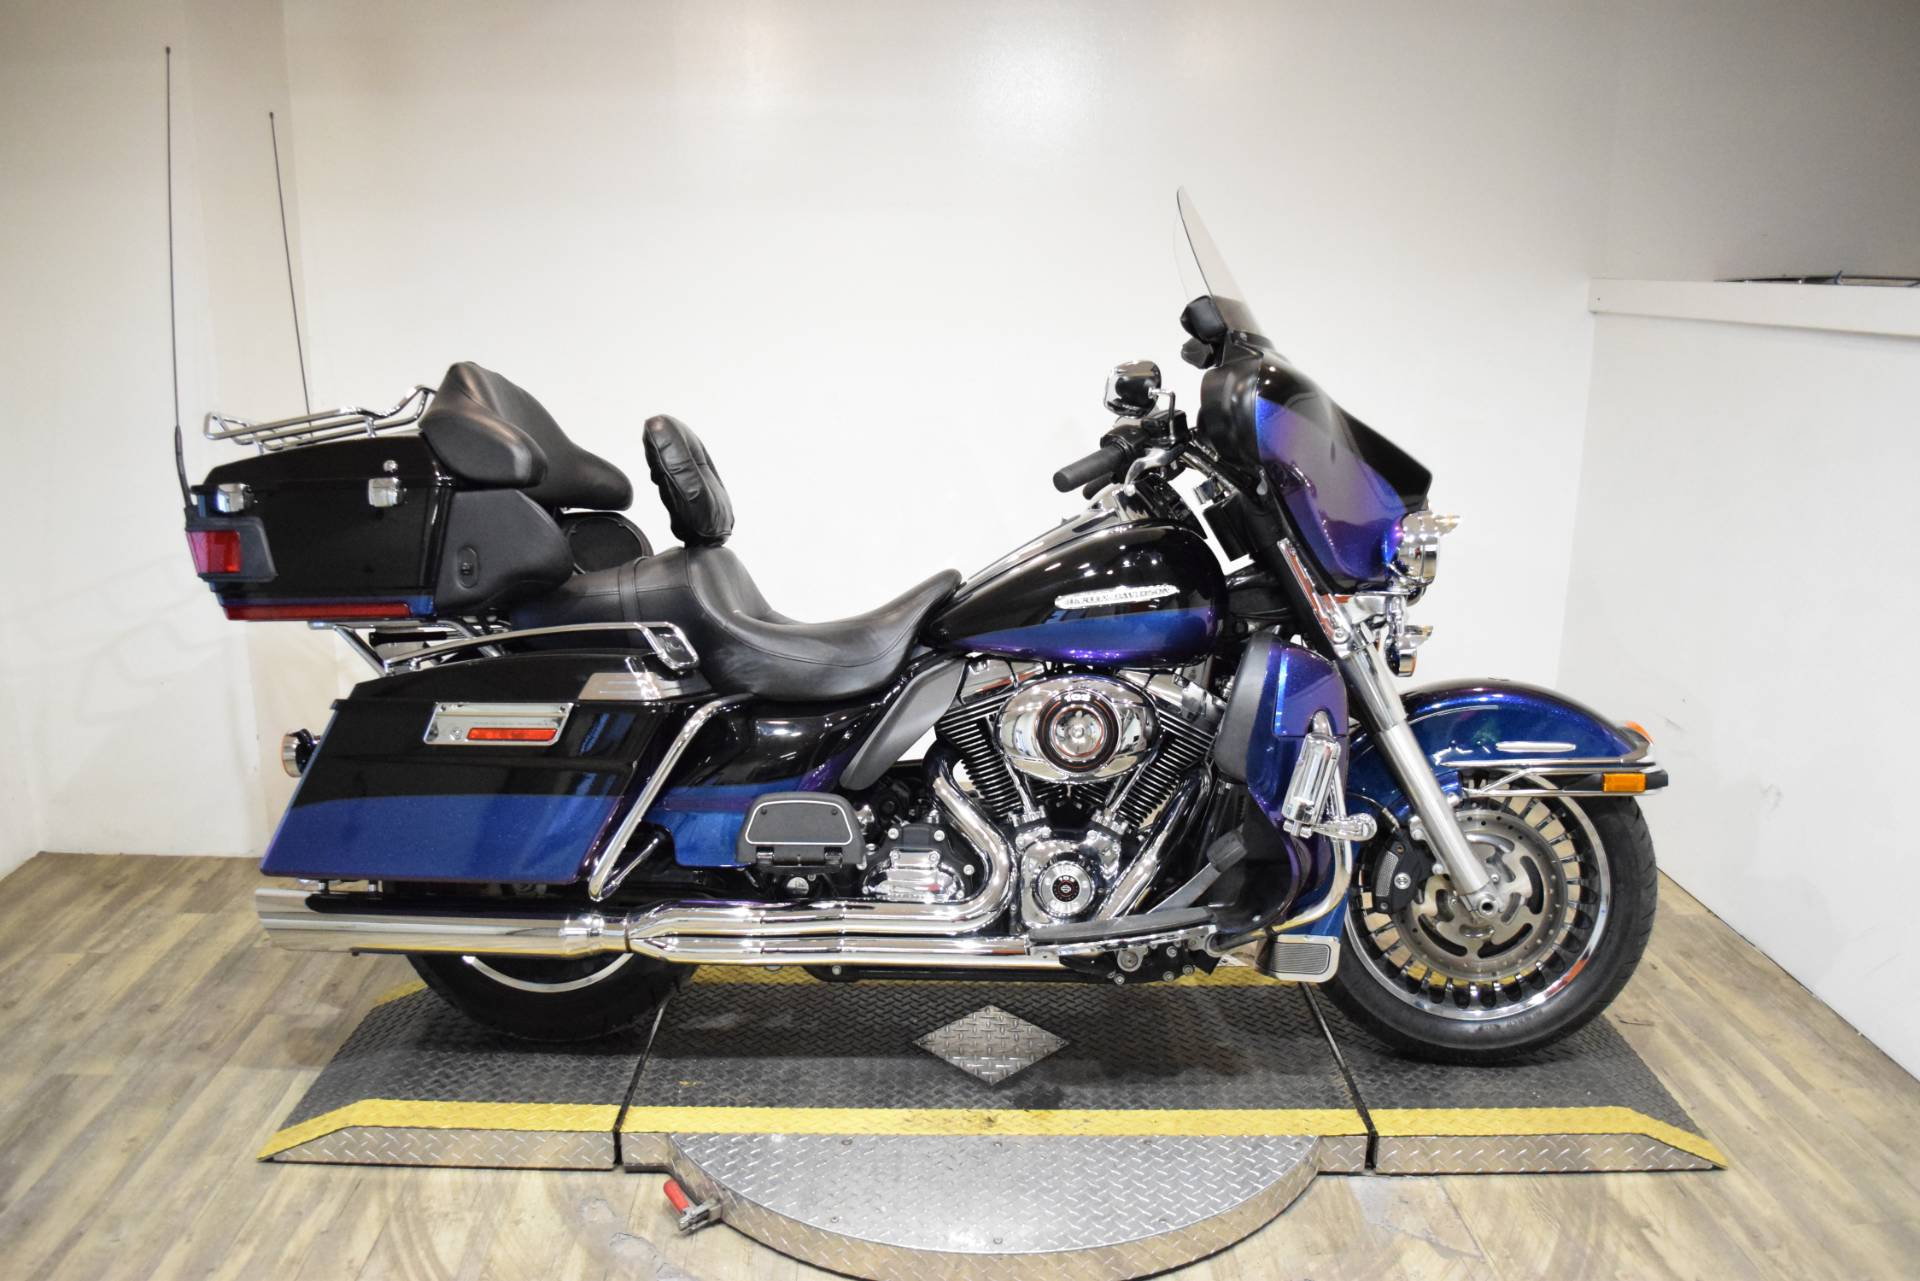 2010 Harley-Davidson Electra Glide® Ultra Limited in Wauconda, Illinois - Photo 1